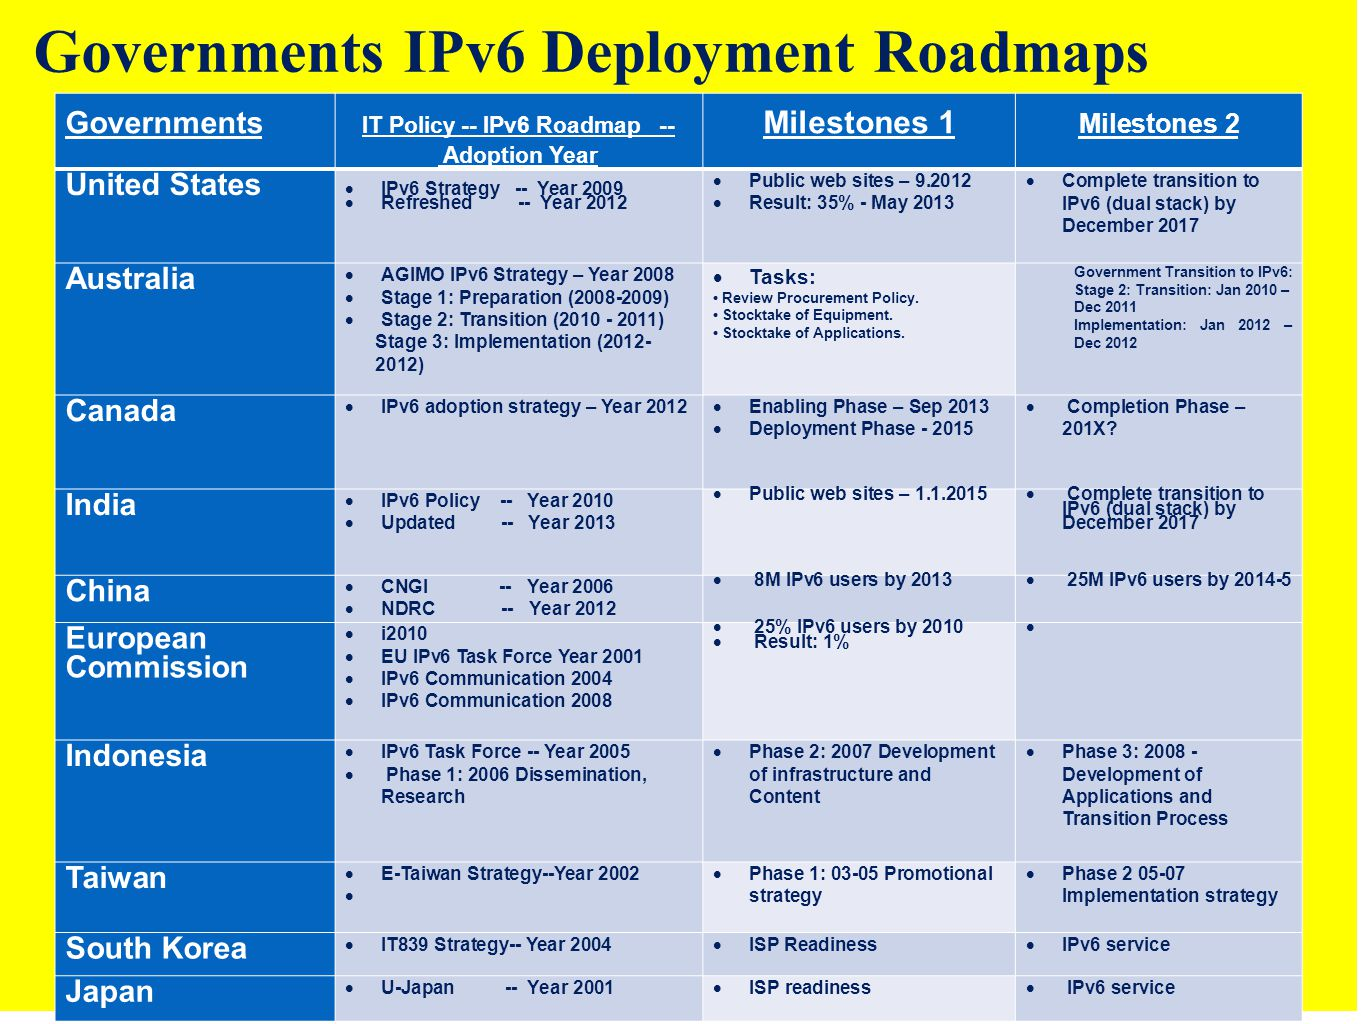 Governments IT Policy -- IPv6 Roadmap -- Adoption Year Milestones 1 Milestones 2 United States  IPv6 Strategy -- Year 2009  Refreshed -- Year 2012  Public web sites – 9.2012  Result: 35% - May 2013  Complete transition to IPv6 (dual stack) by December 2017 Australia  AGIMO IPv6 Strategy – Year 2008  Stage 1: Preparation (2008-2009)  Stage 2: Transition (2010 - 2011) Stage 3: Implementation (2012- 2012)  Tasks: Review Procurement Policy.